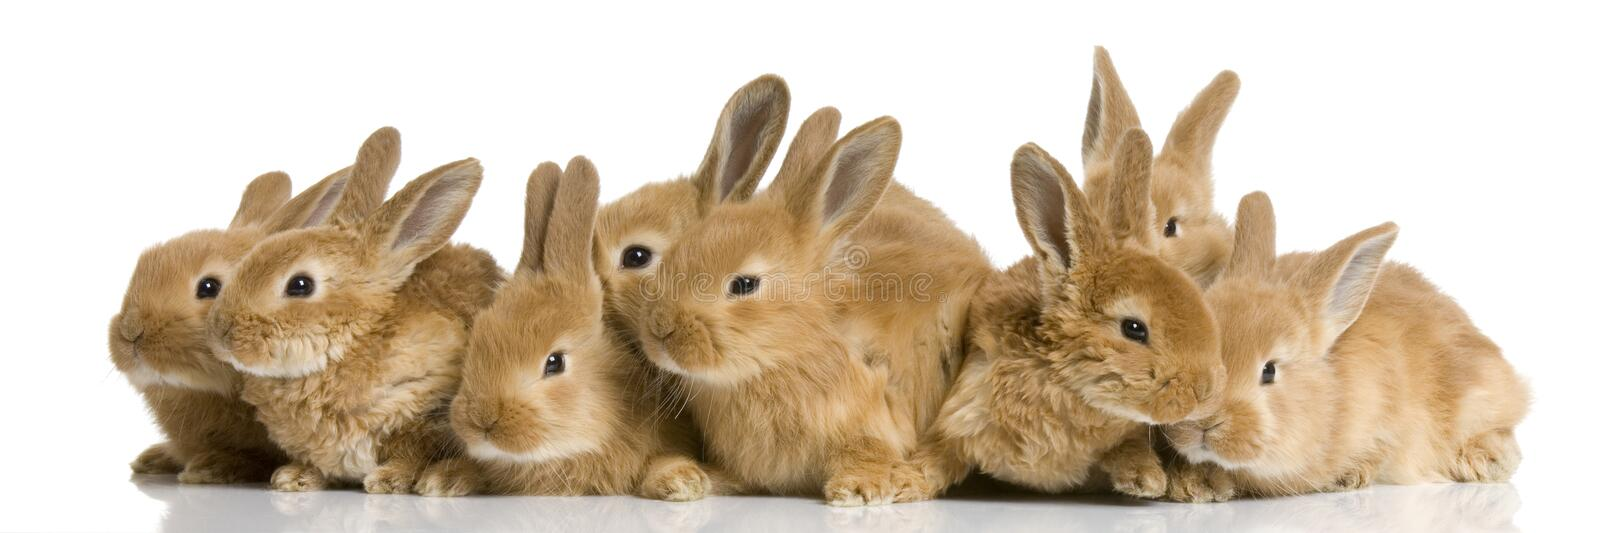 Download Group of bunnies stock image. Image of animal, hear, childhood - 2307427